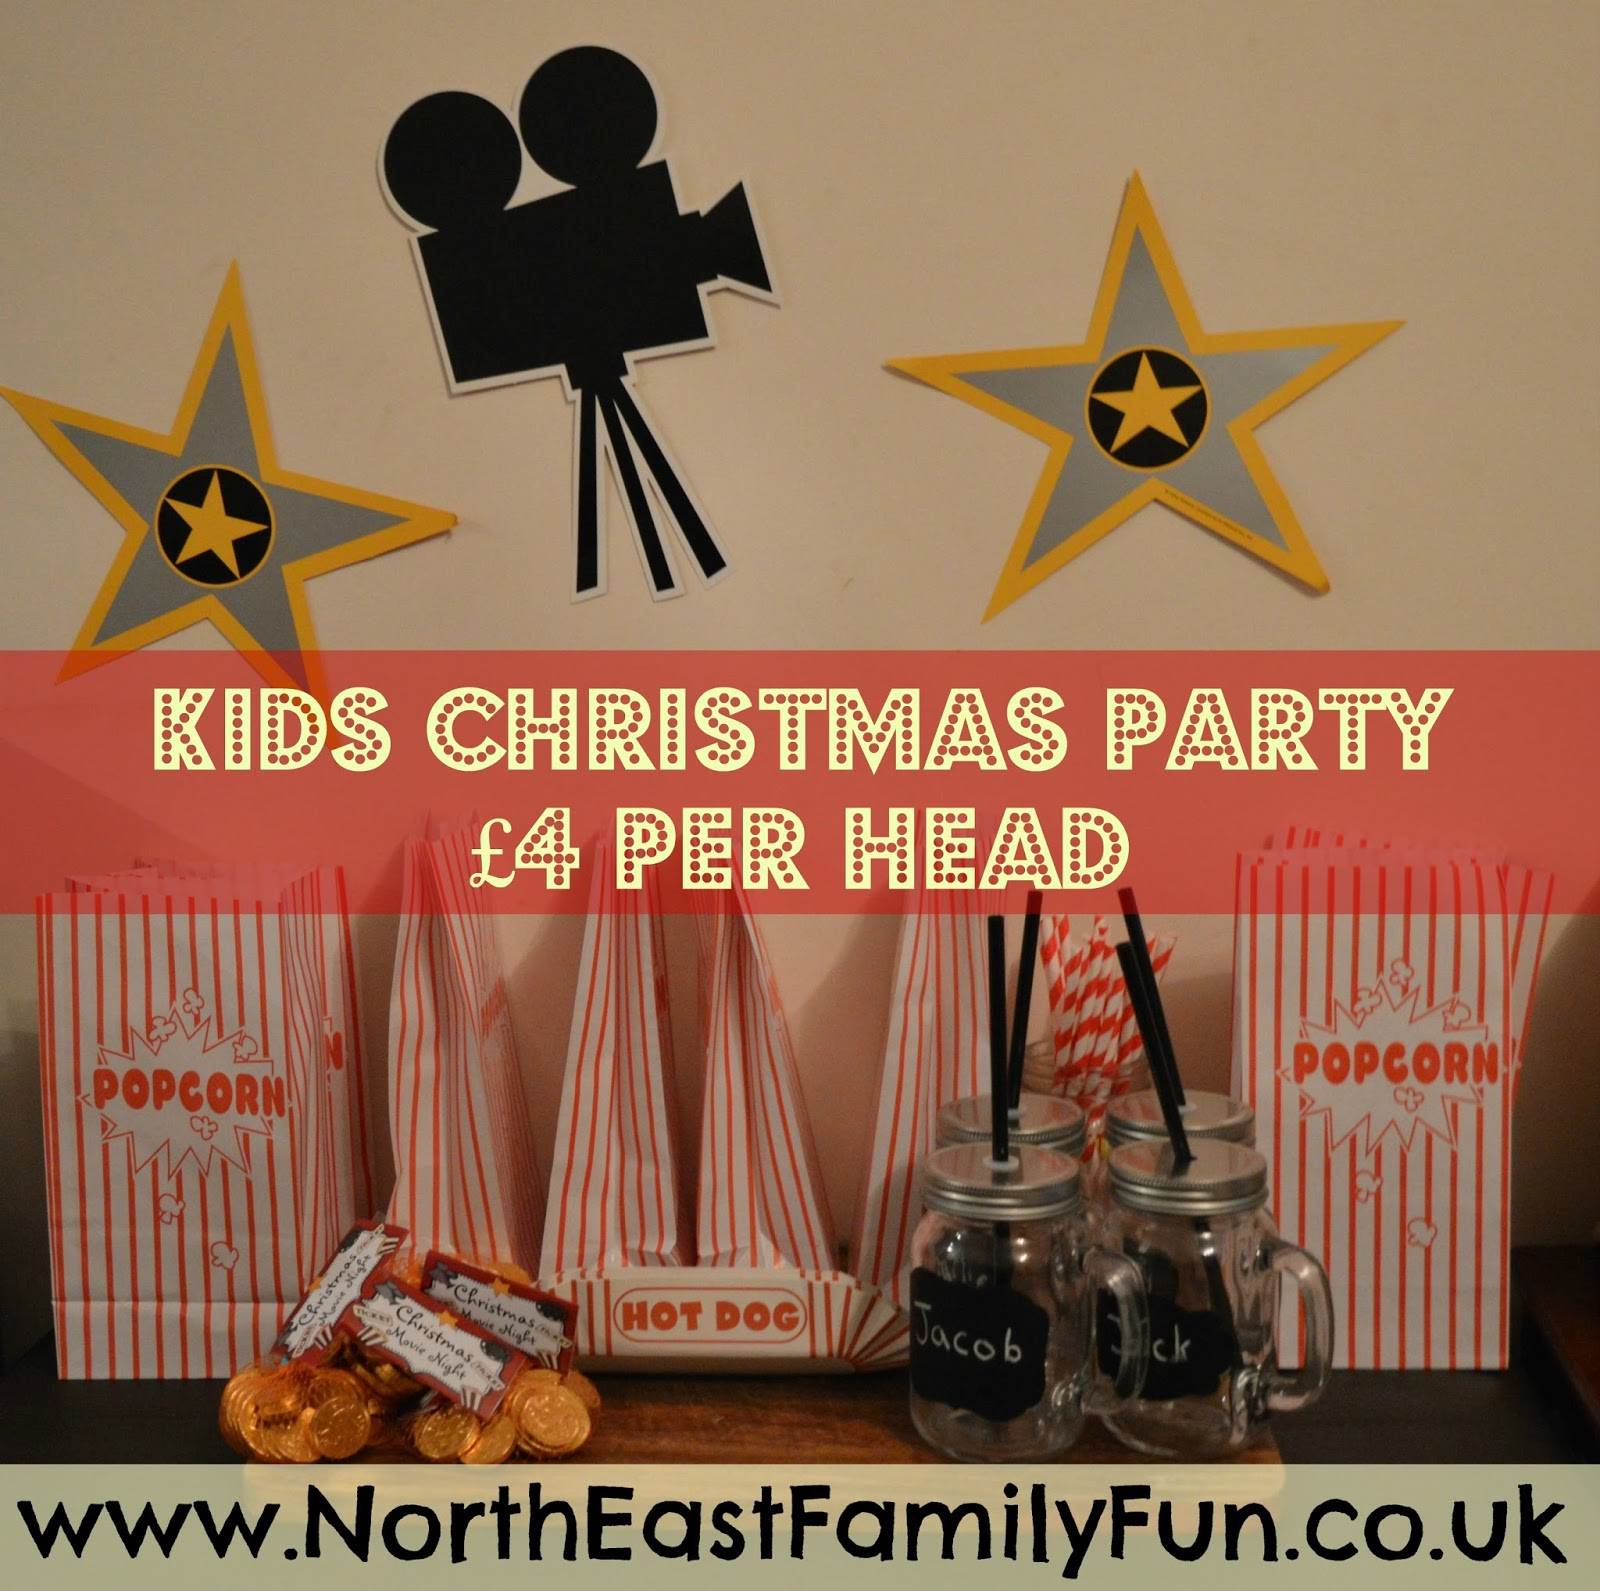 How to host a fantastic kids Christmas party for under £4 per head - popcorn stand